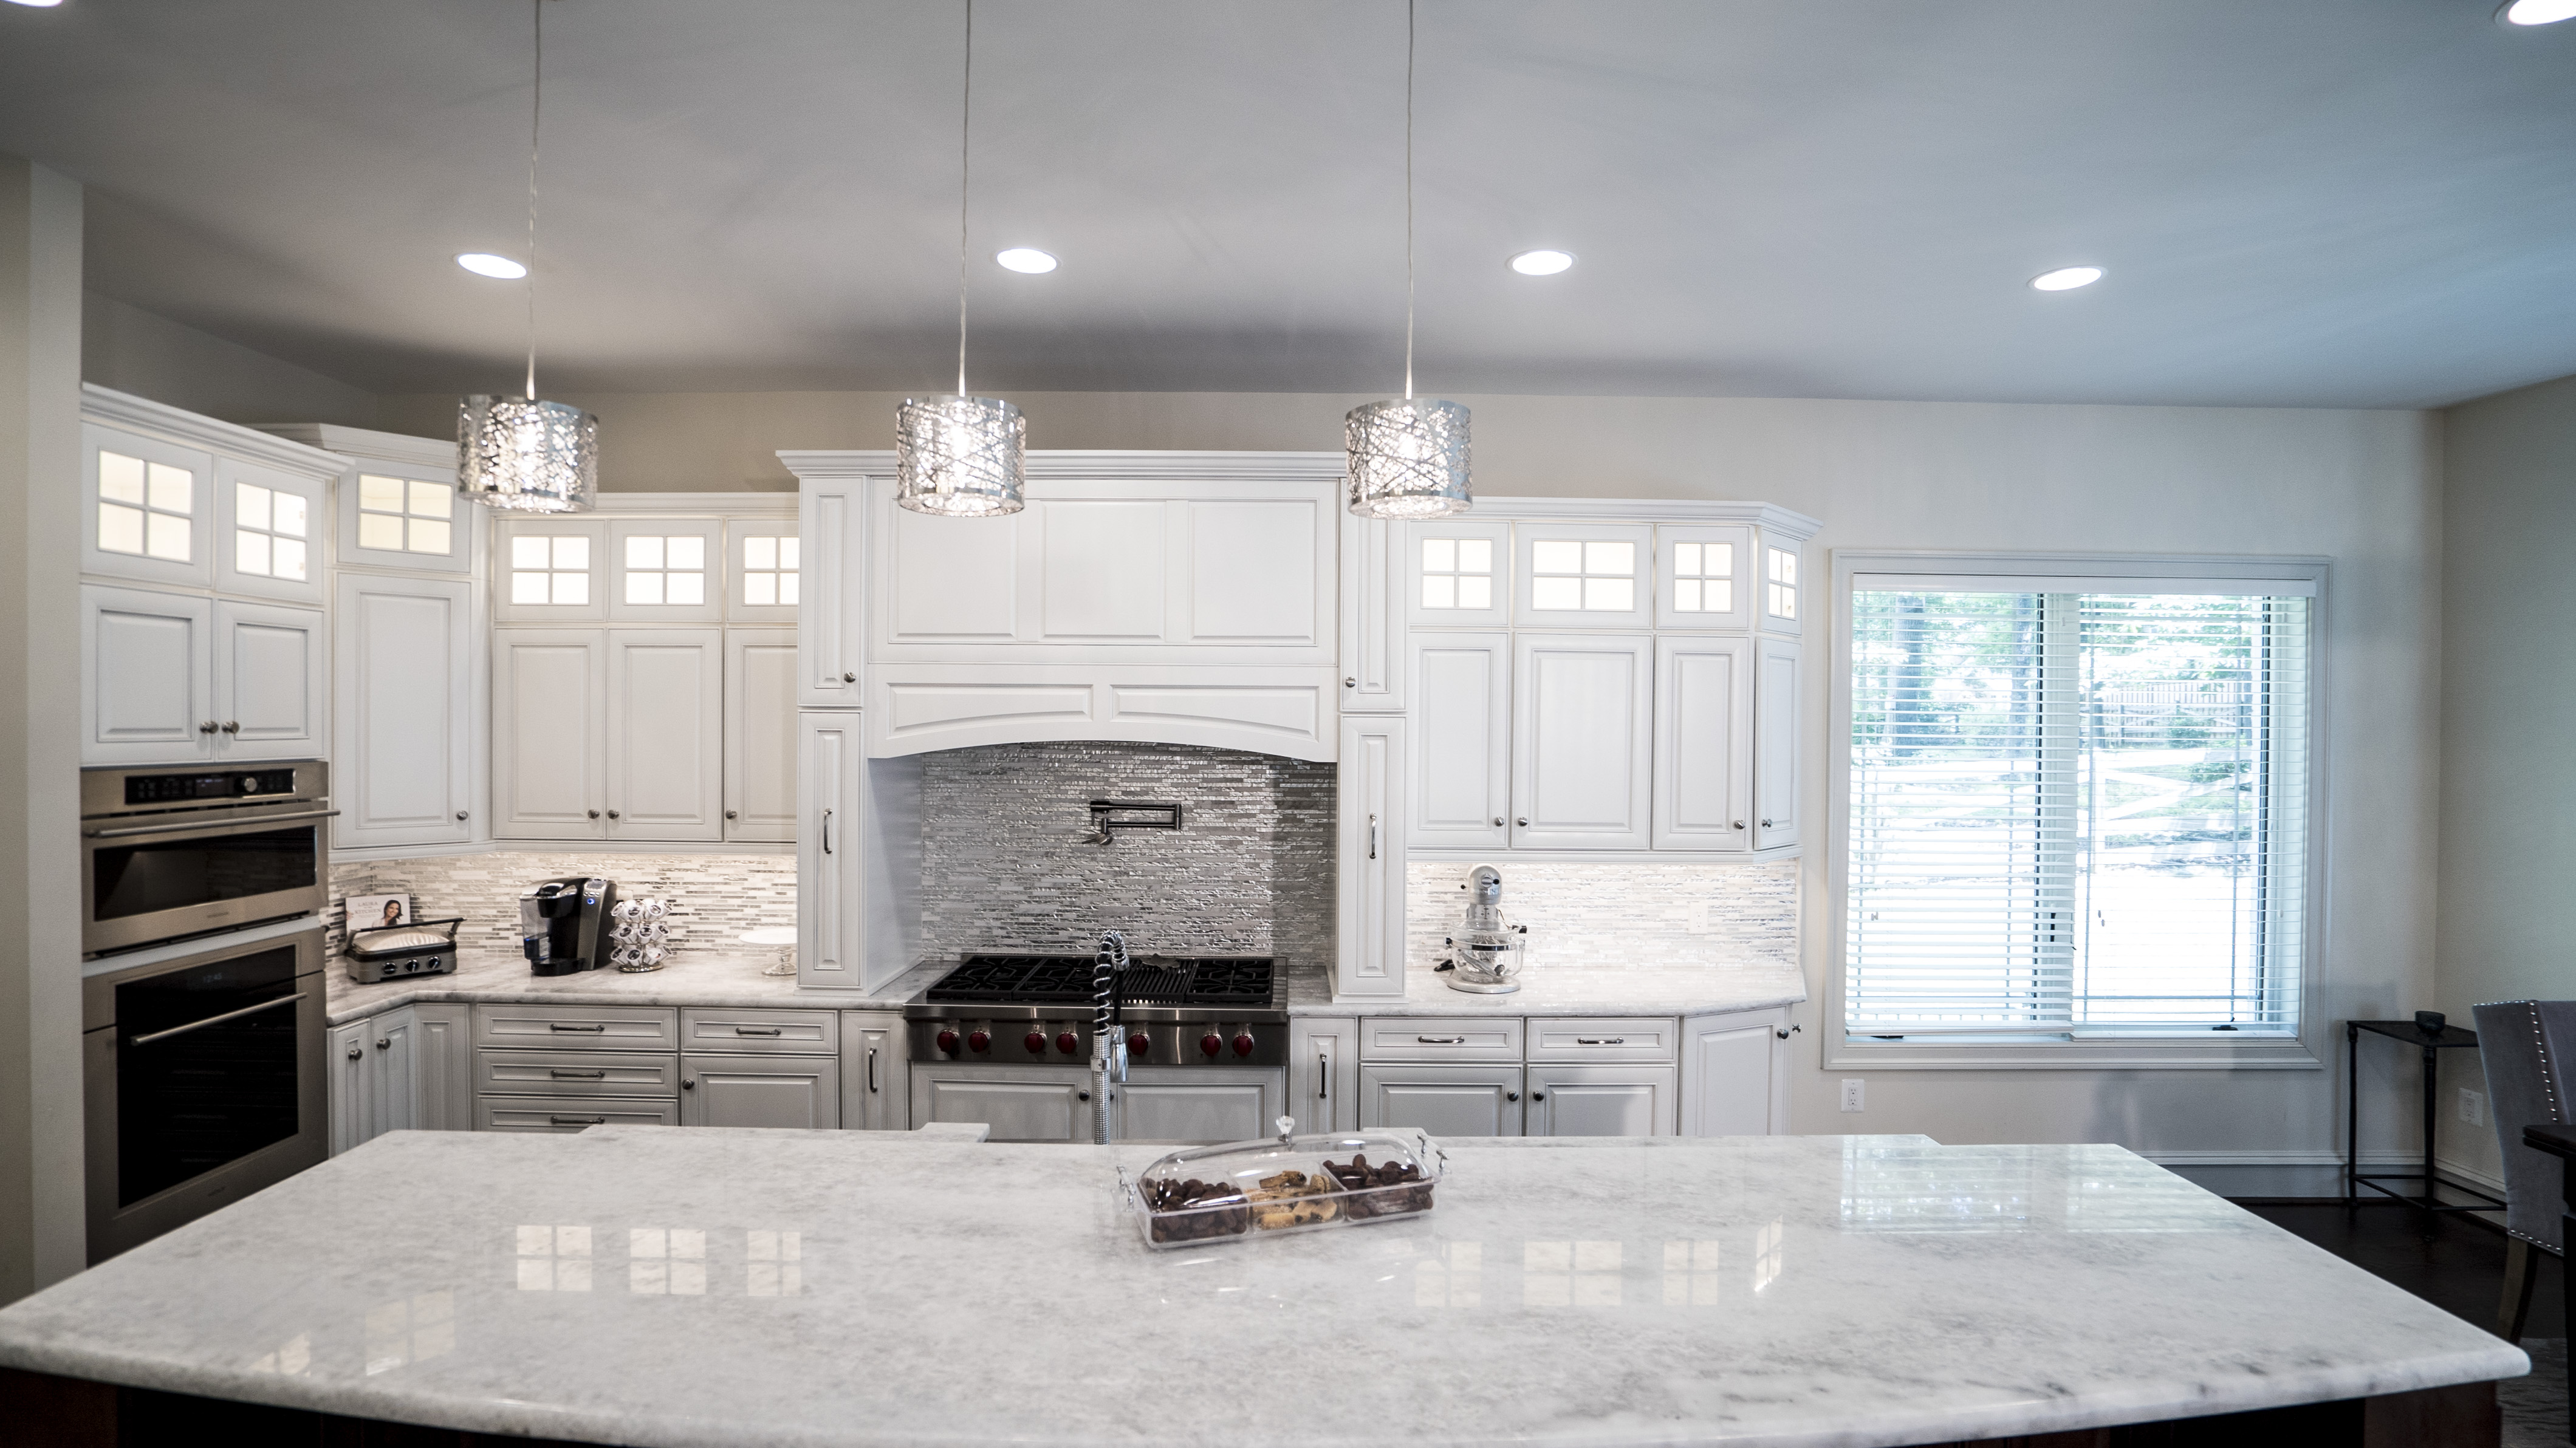 The Naffau0027s love their new kitchen and said u201cIf we have any home improvement projects in the future USA Cabinets would be our first choice.u201d & KITCHEN CABINETS IN VIENNA VA - Kitchen u0026 Bath Remodeling/Cabinets ...